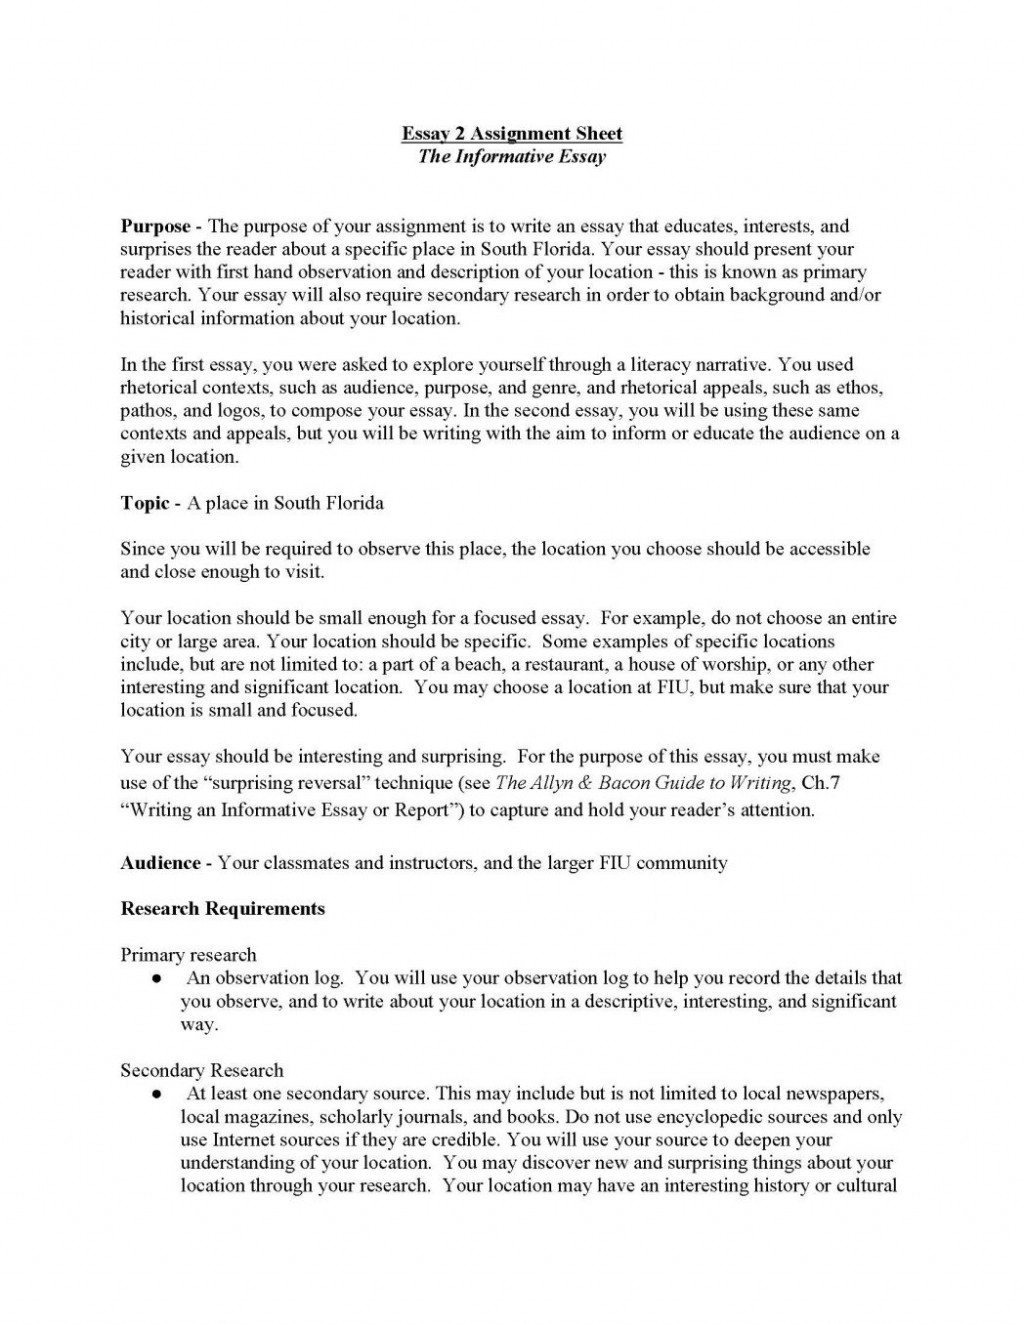 014 Essay Example How To Write This I Believe Synthesis Topic Ideas Informative Research Topics Samples Unit Assignment P Good Template Fantastic A Things On What Large